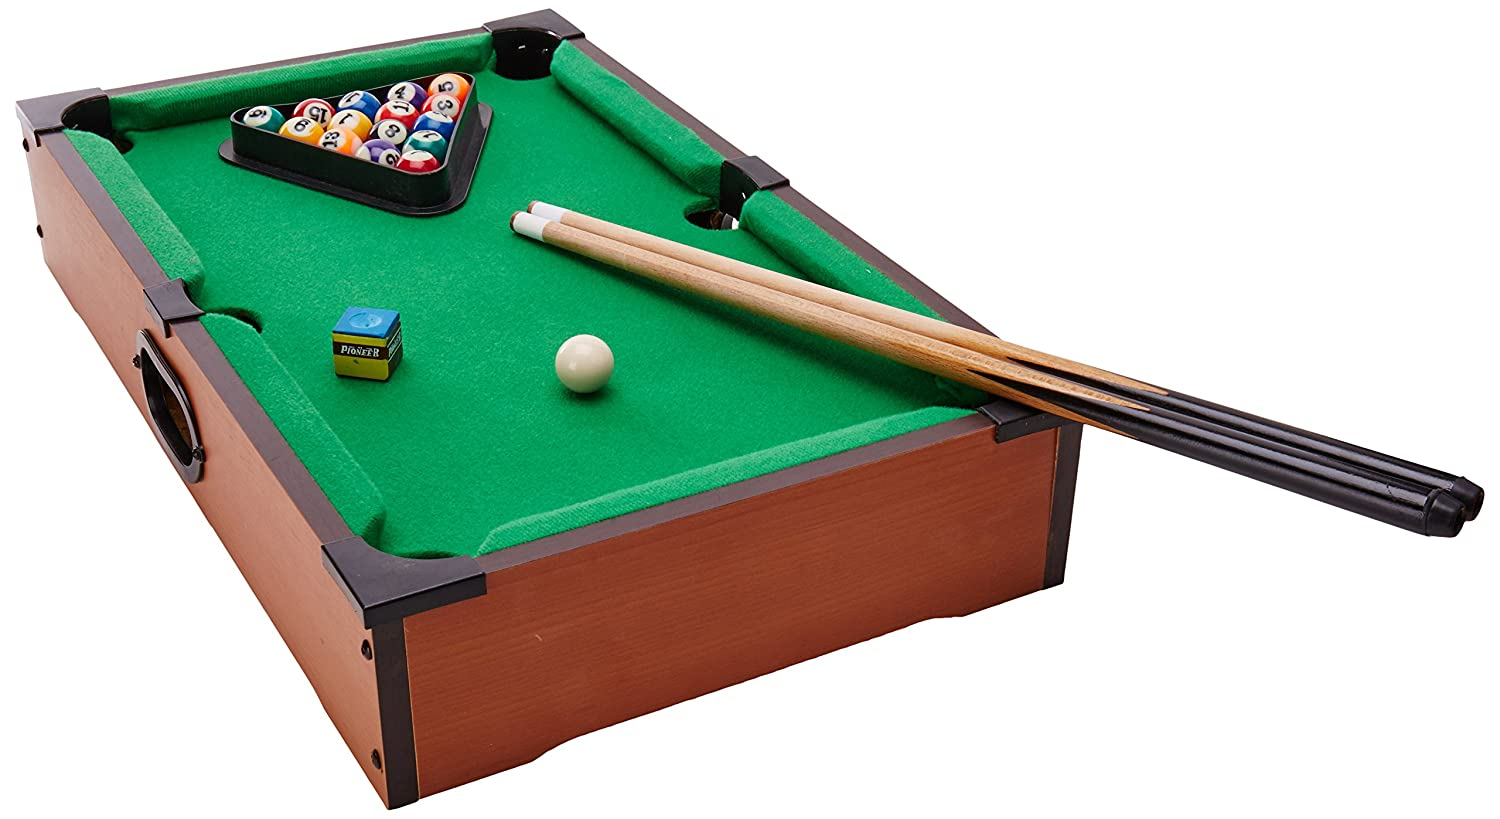 Amazoncom Ideal RackEm Tabletop Pool Toys Games - Pool table scorekeeper